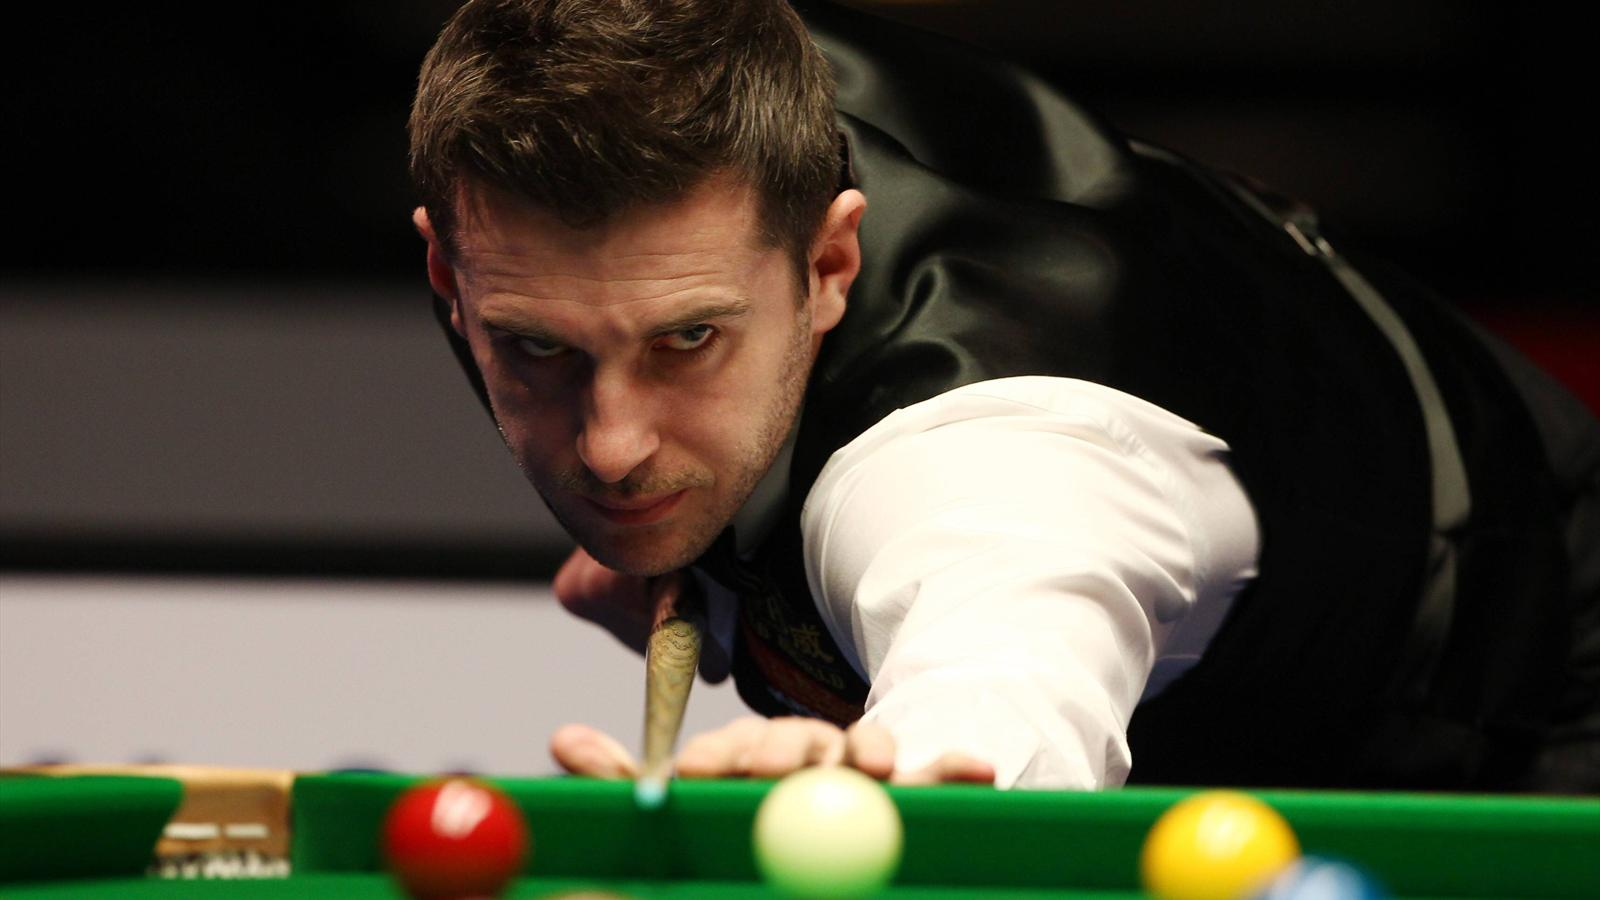 Defending champion Mark Selby falls to 'curse of the Crucible' - World Championship 2014-2015 - Snooker - Eurosport